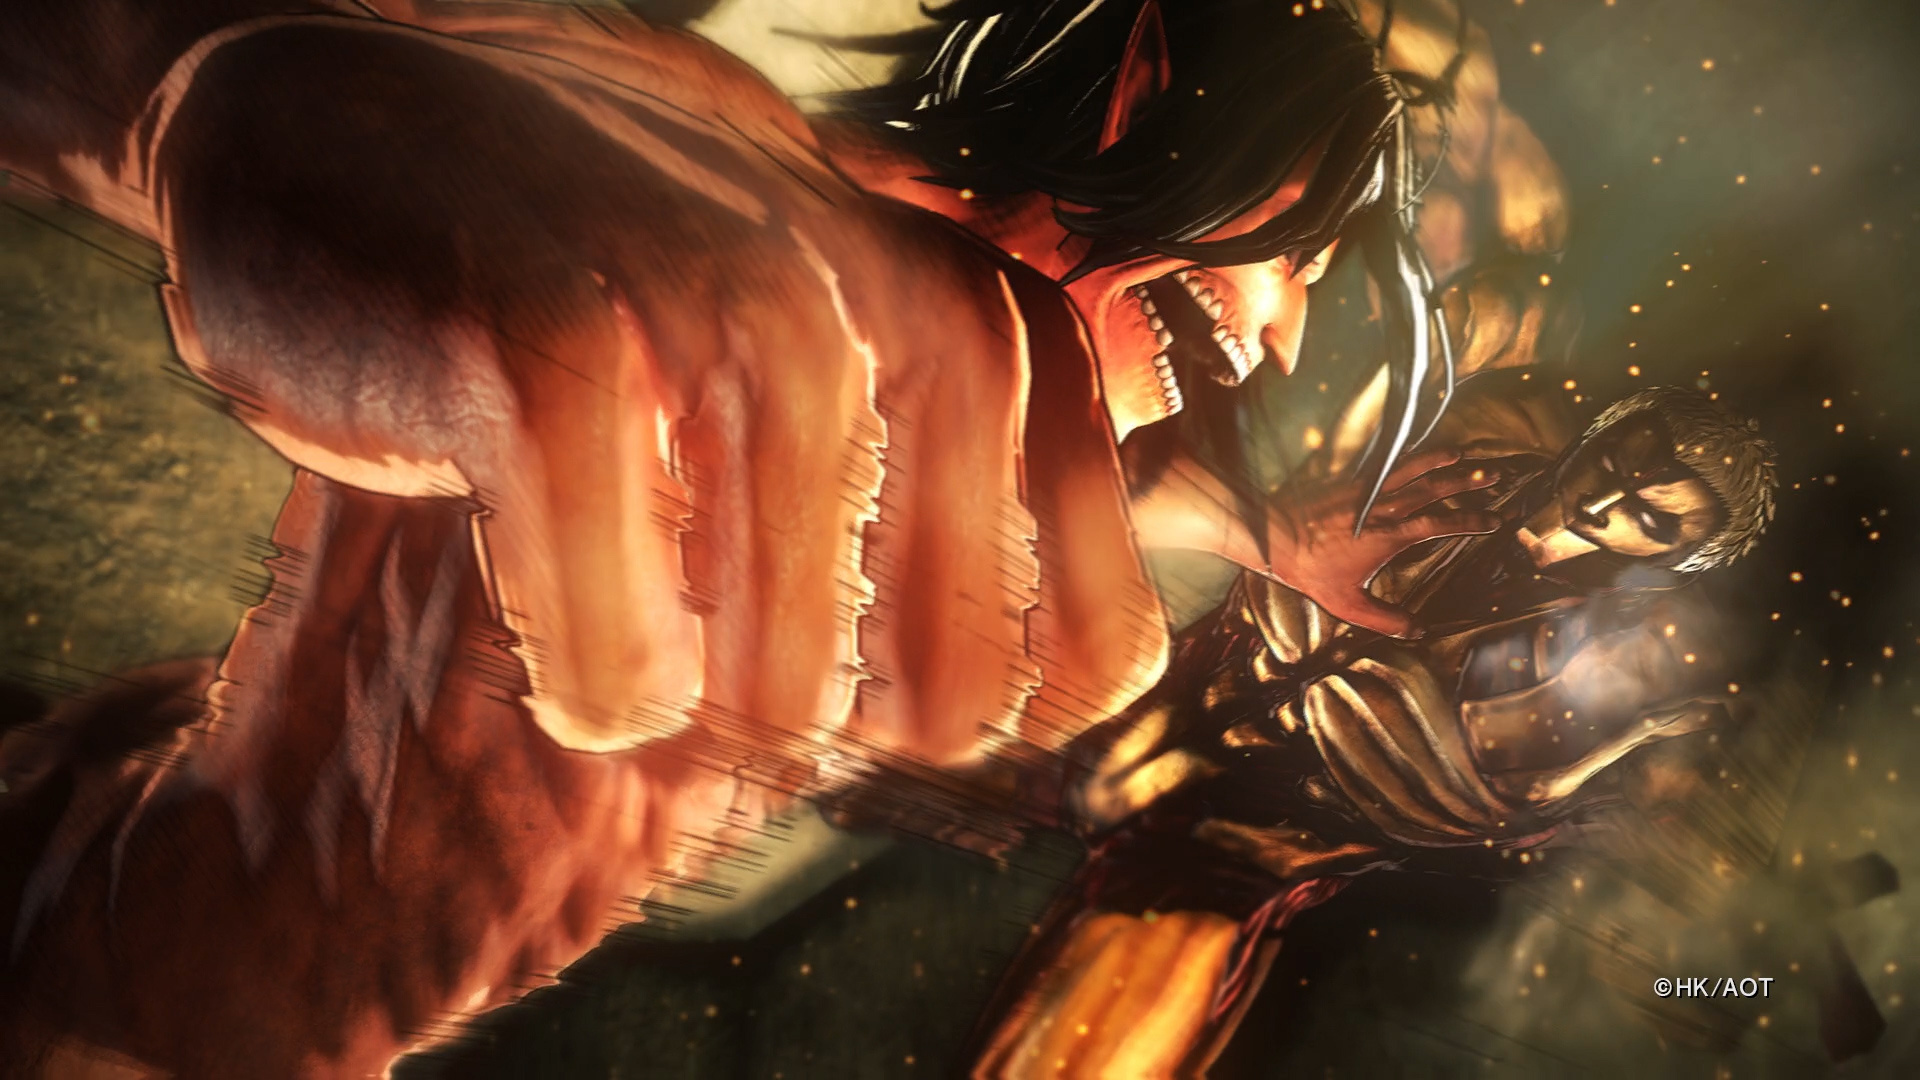 Attack On Titan Armored Titan Wallpaper Posted By Christopher Tremblay